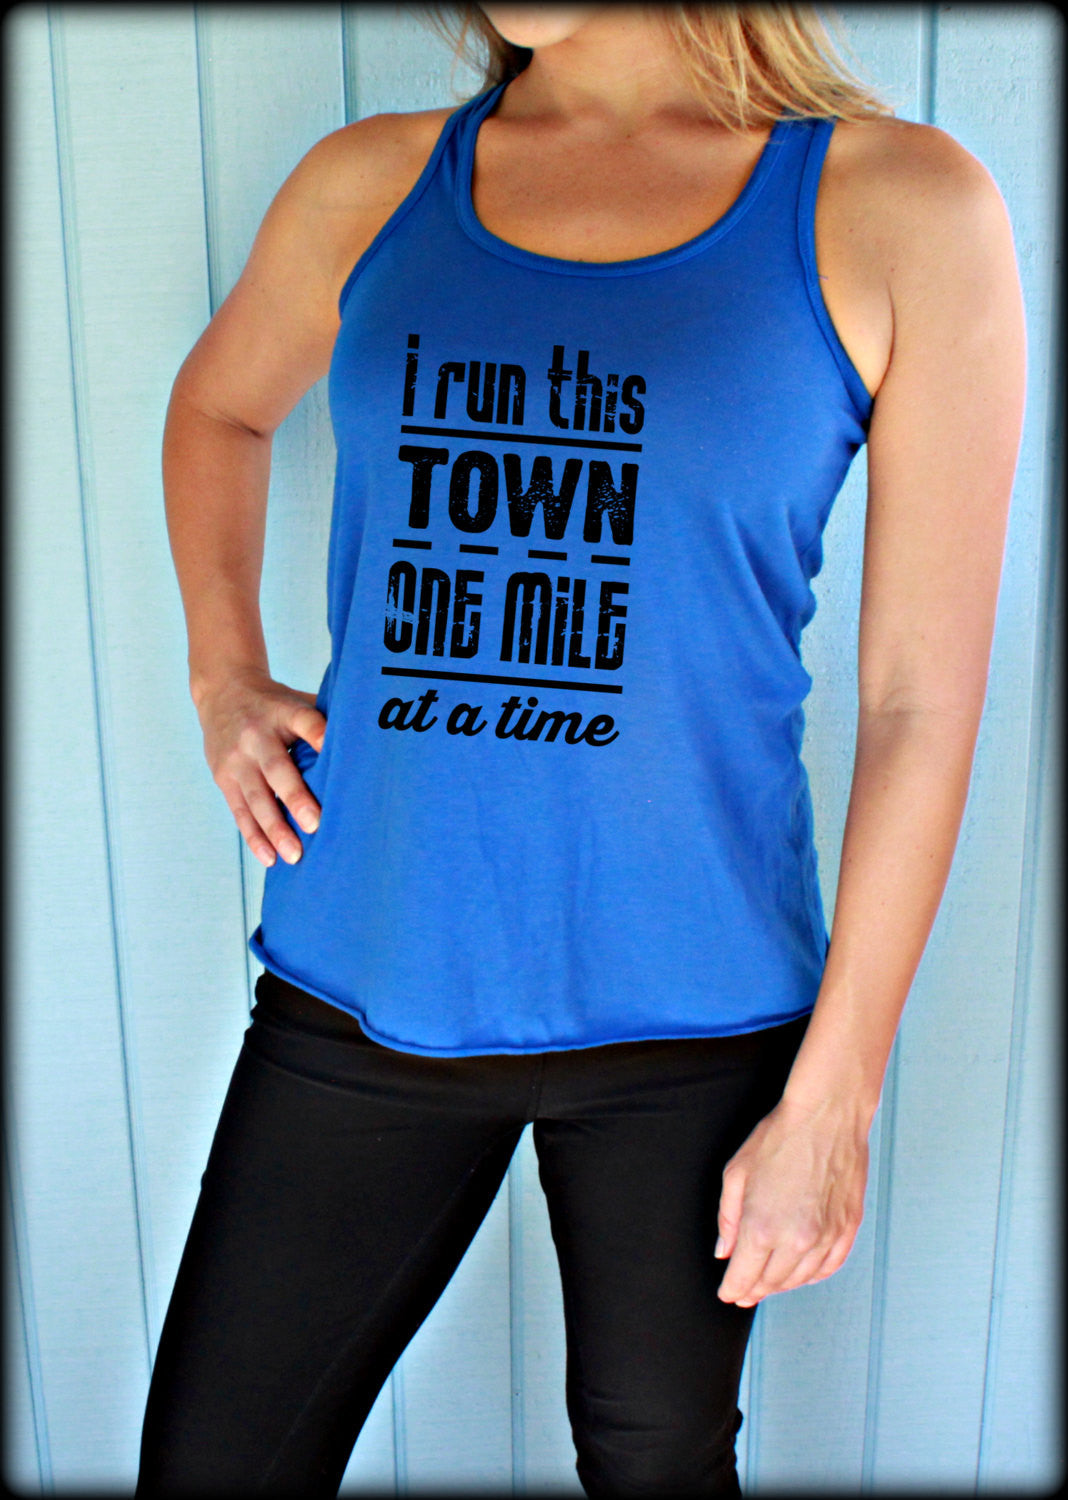 Womens Flowy Running Tank Top. I Run This Town One Mile At A Time. Motivational Workout Clothing. Workout Inspiration.